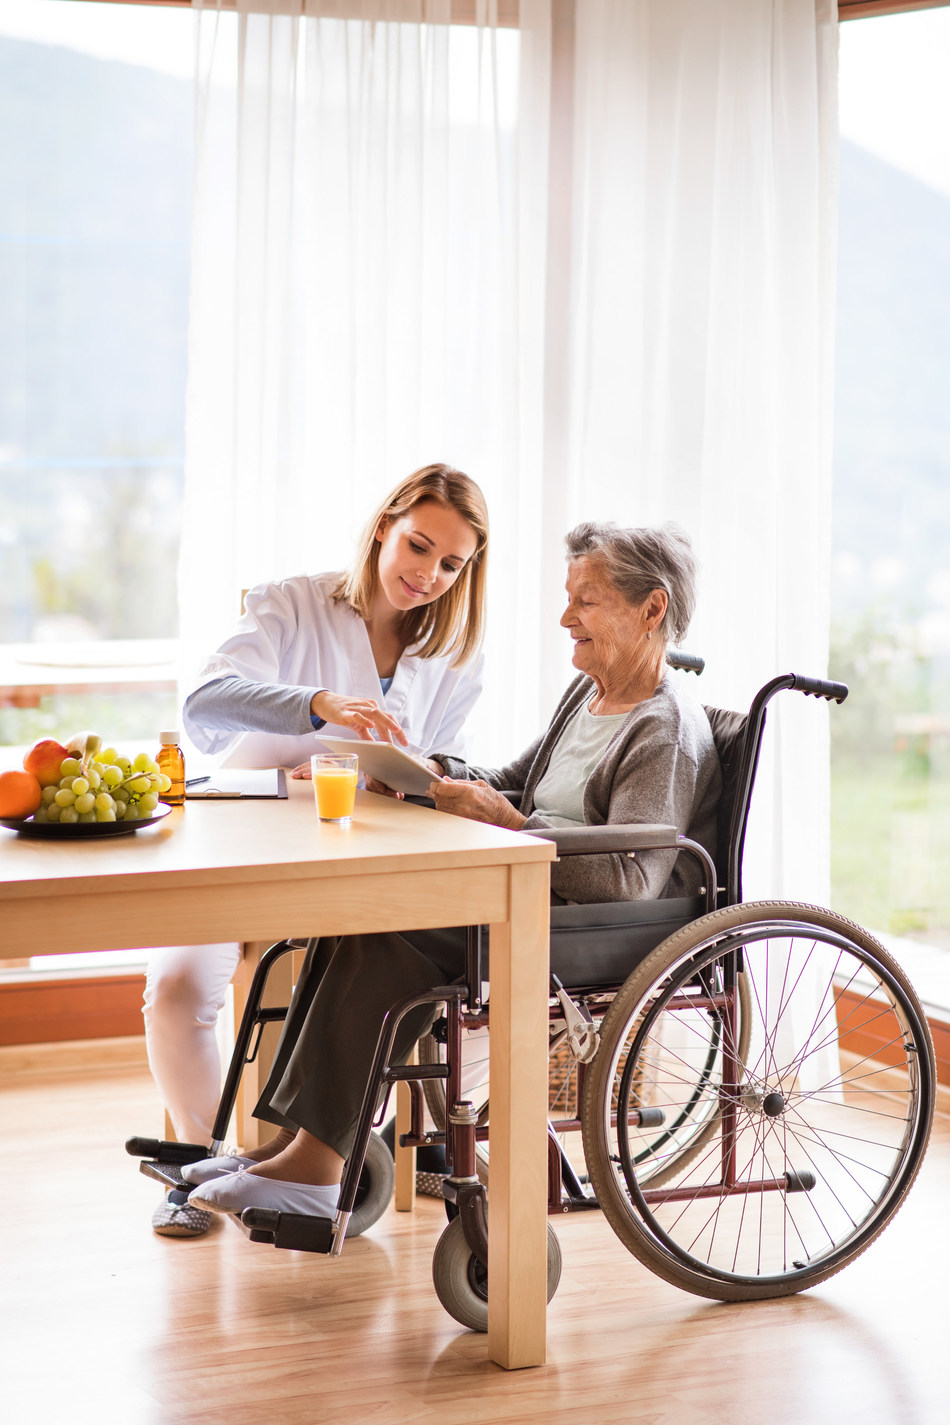 FIrstLight Home Care has announced a new partnership with HNC Virtual Solutions that integrate new, cutting-edge telehealth solutions into their leading nonmedical caregiving services.